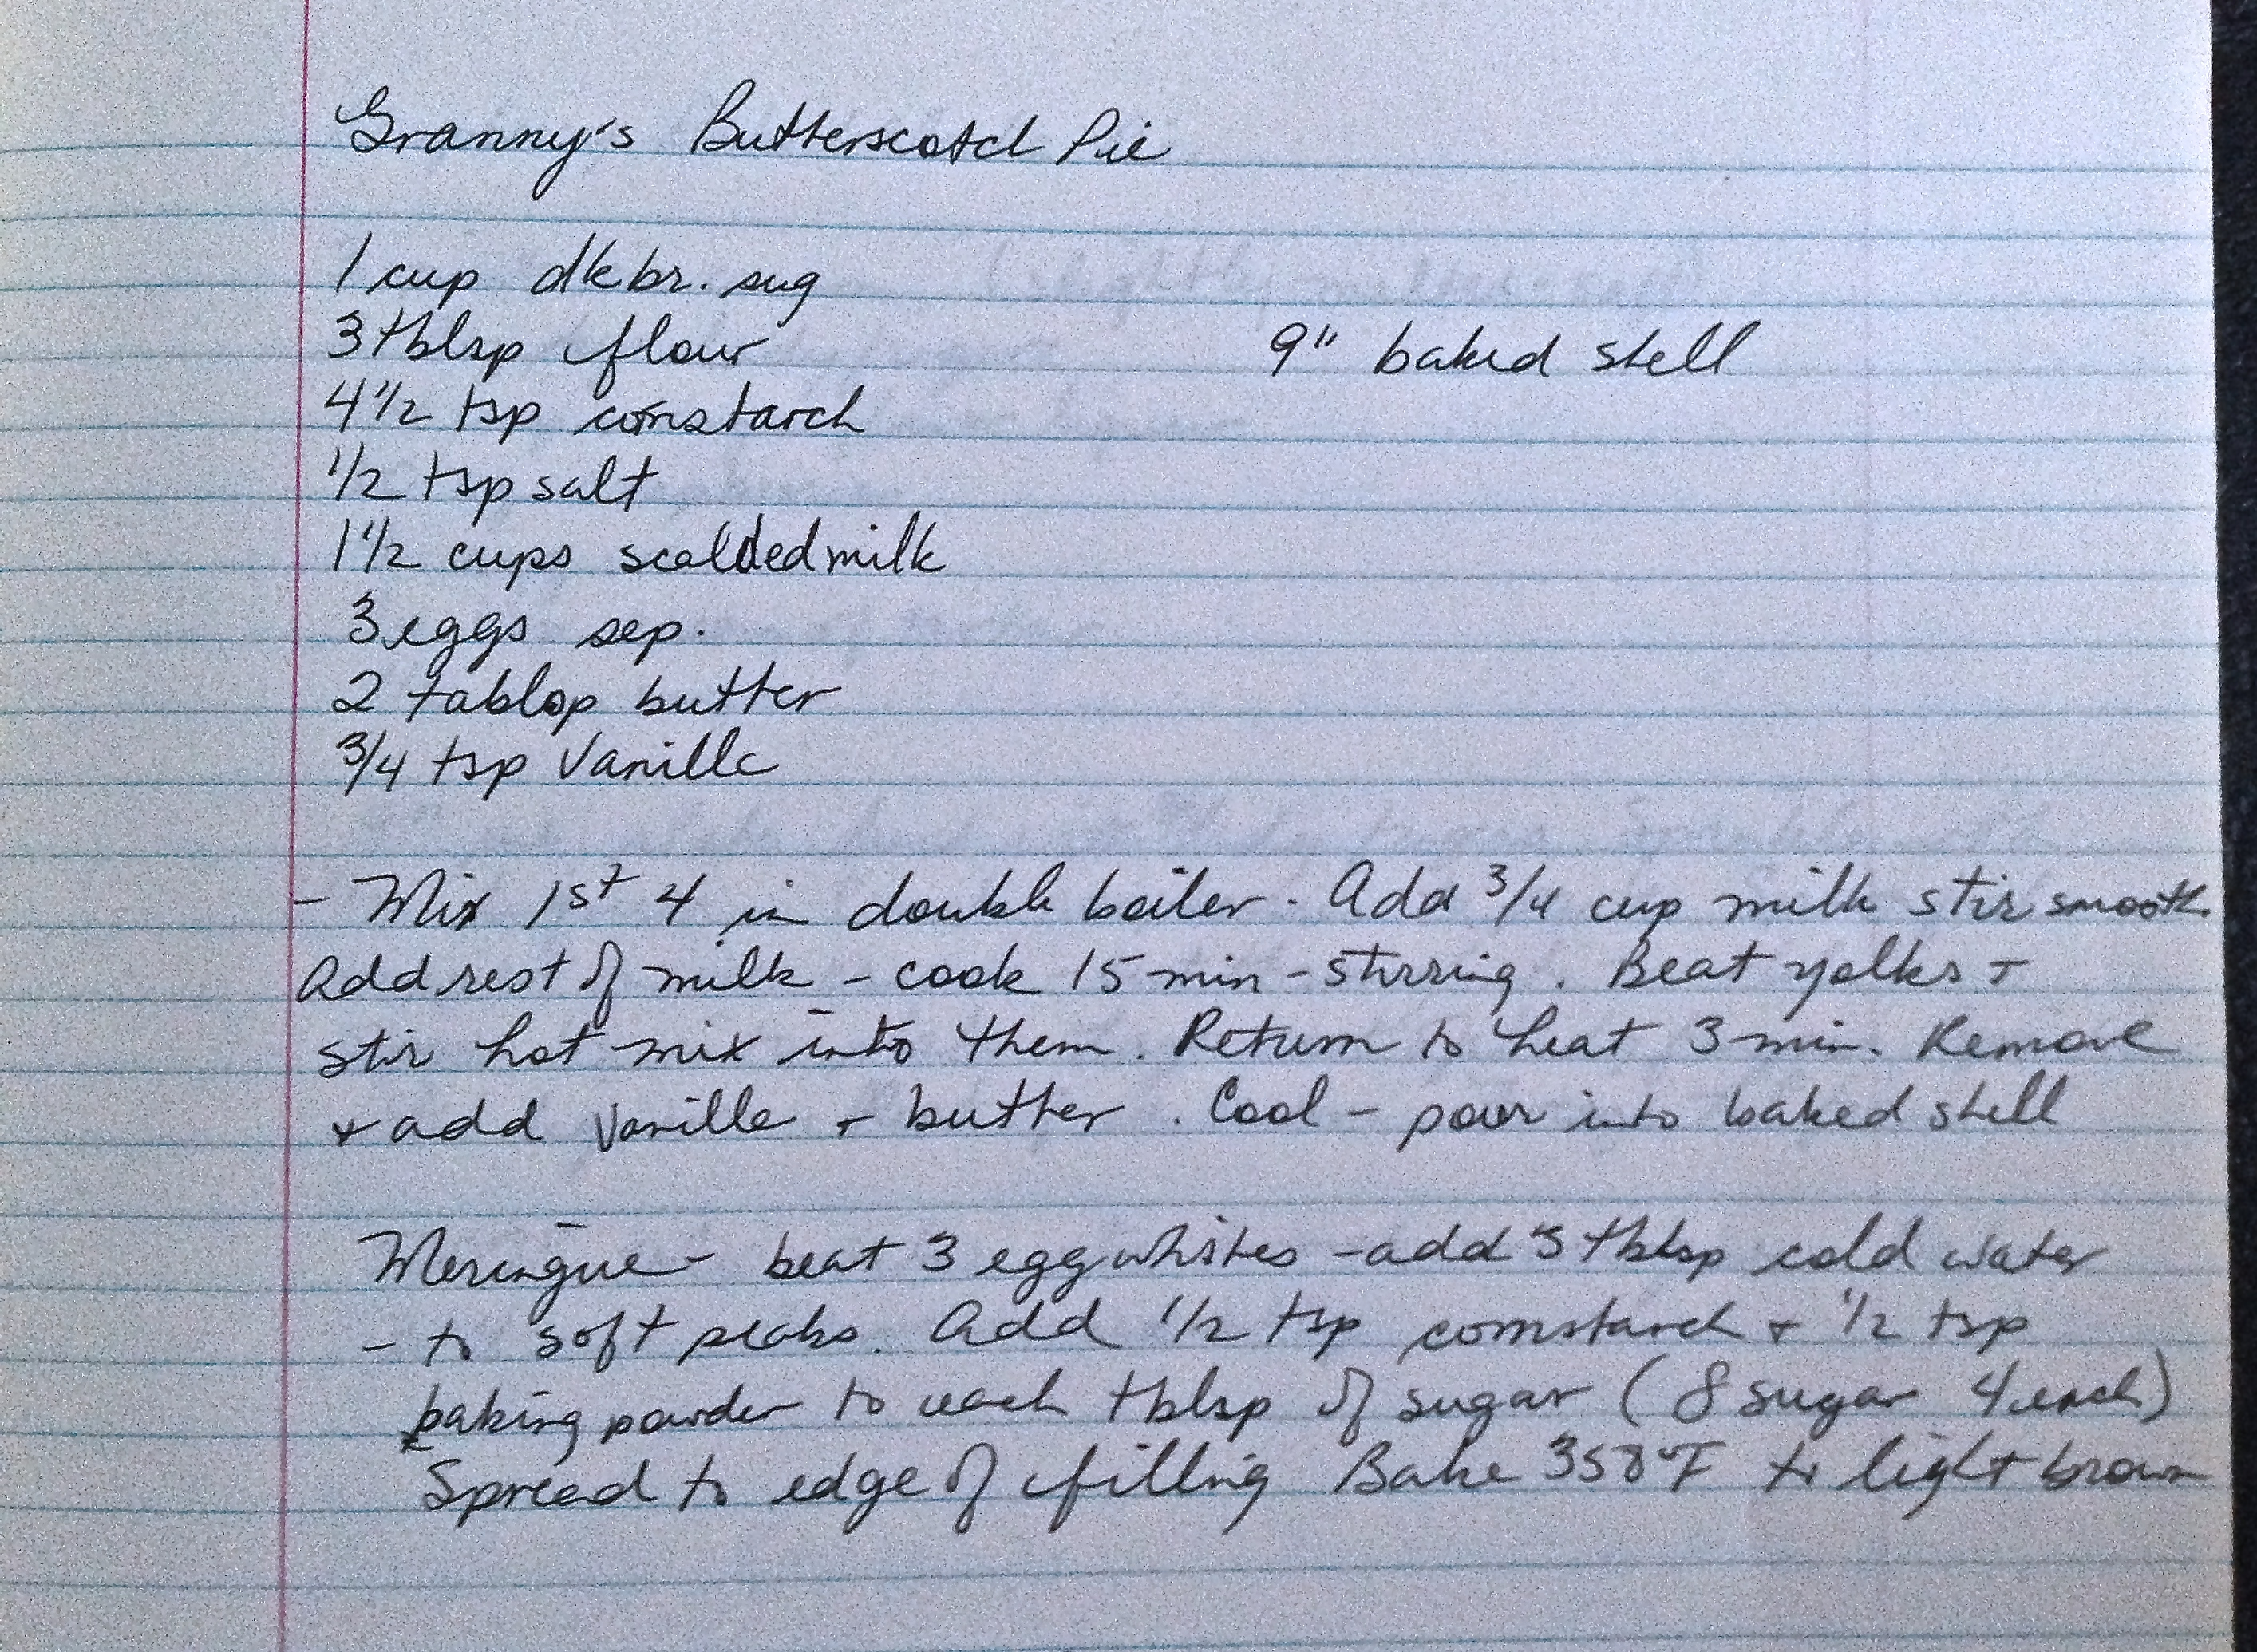 Granny's Butterscotch pie recipe